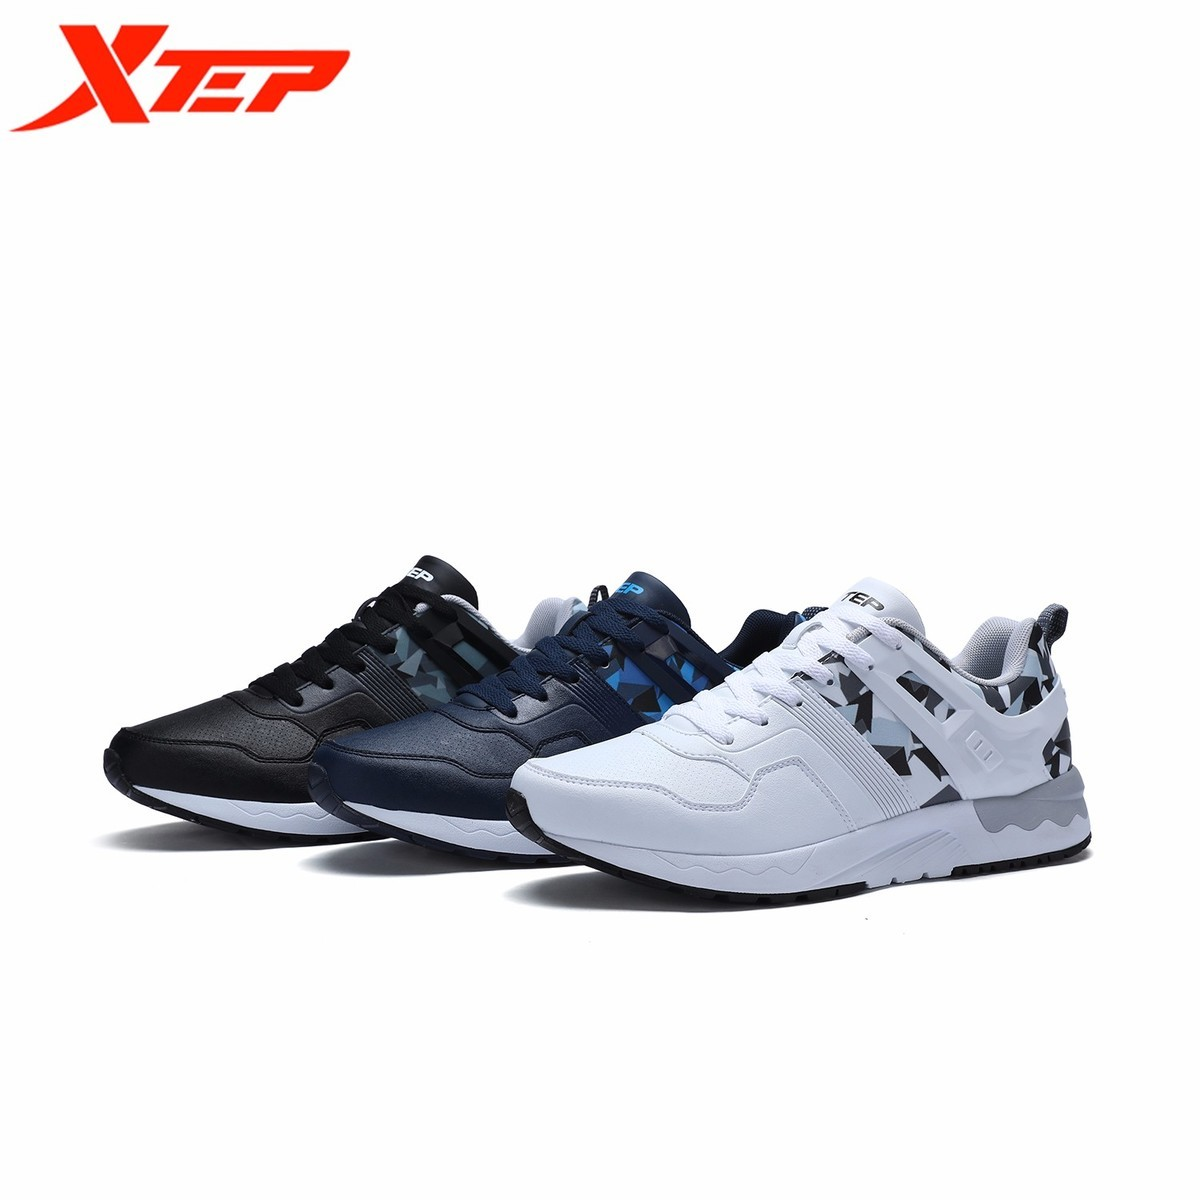 XTEP 2017 Men's Cool Camouflage Low Upper Flat Sports Skateboarding Skateboard Sneakers Shoes Free Shipping Classic Comfortable